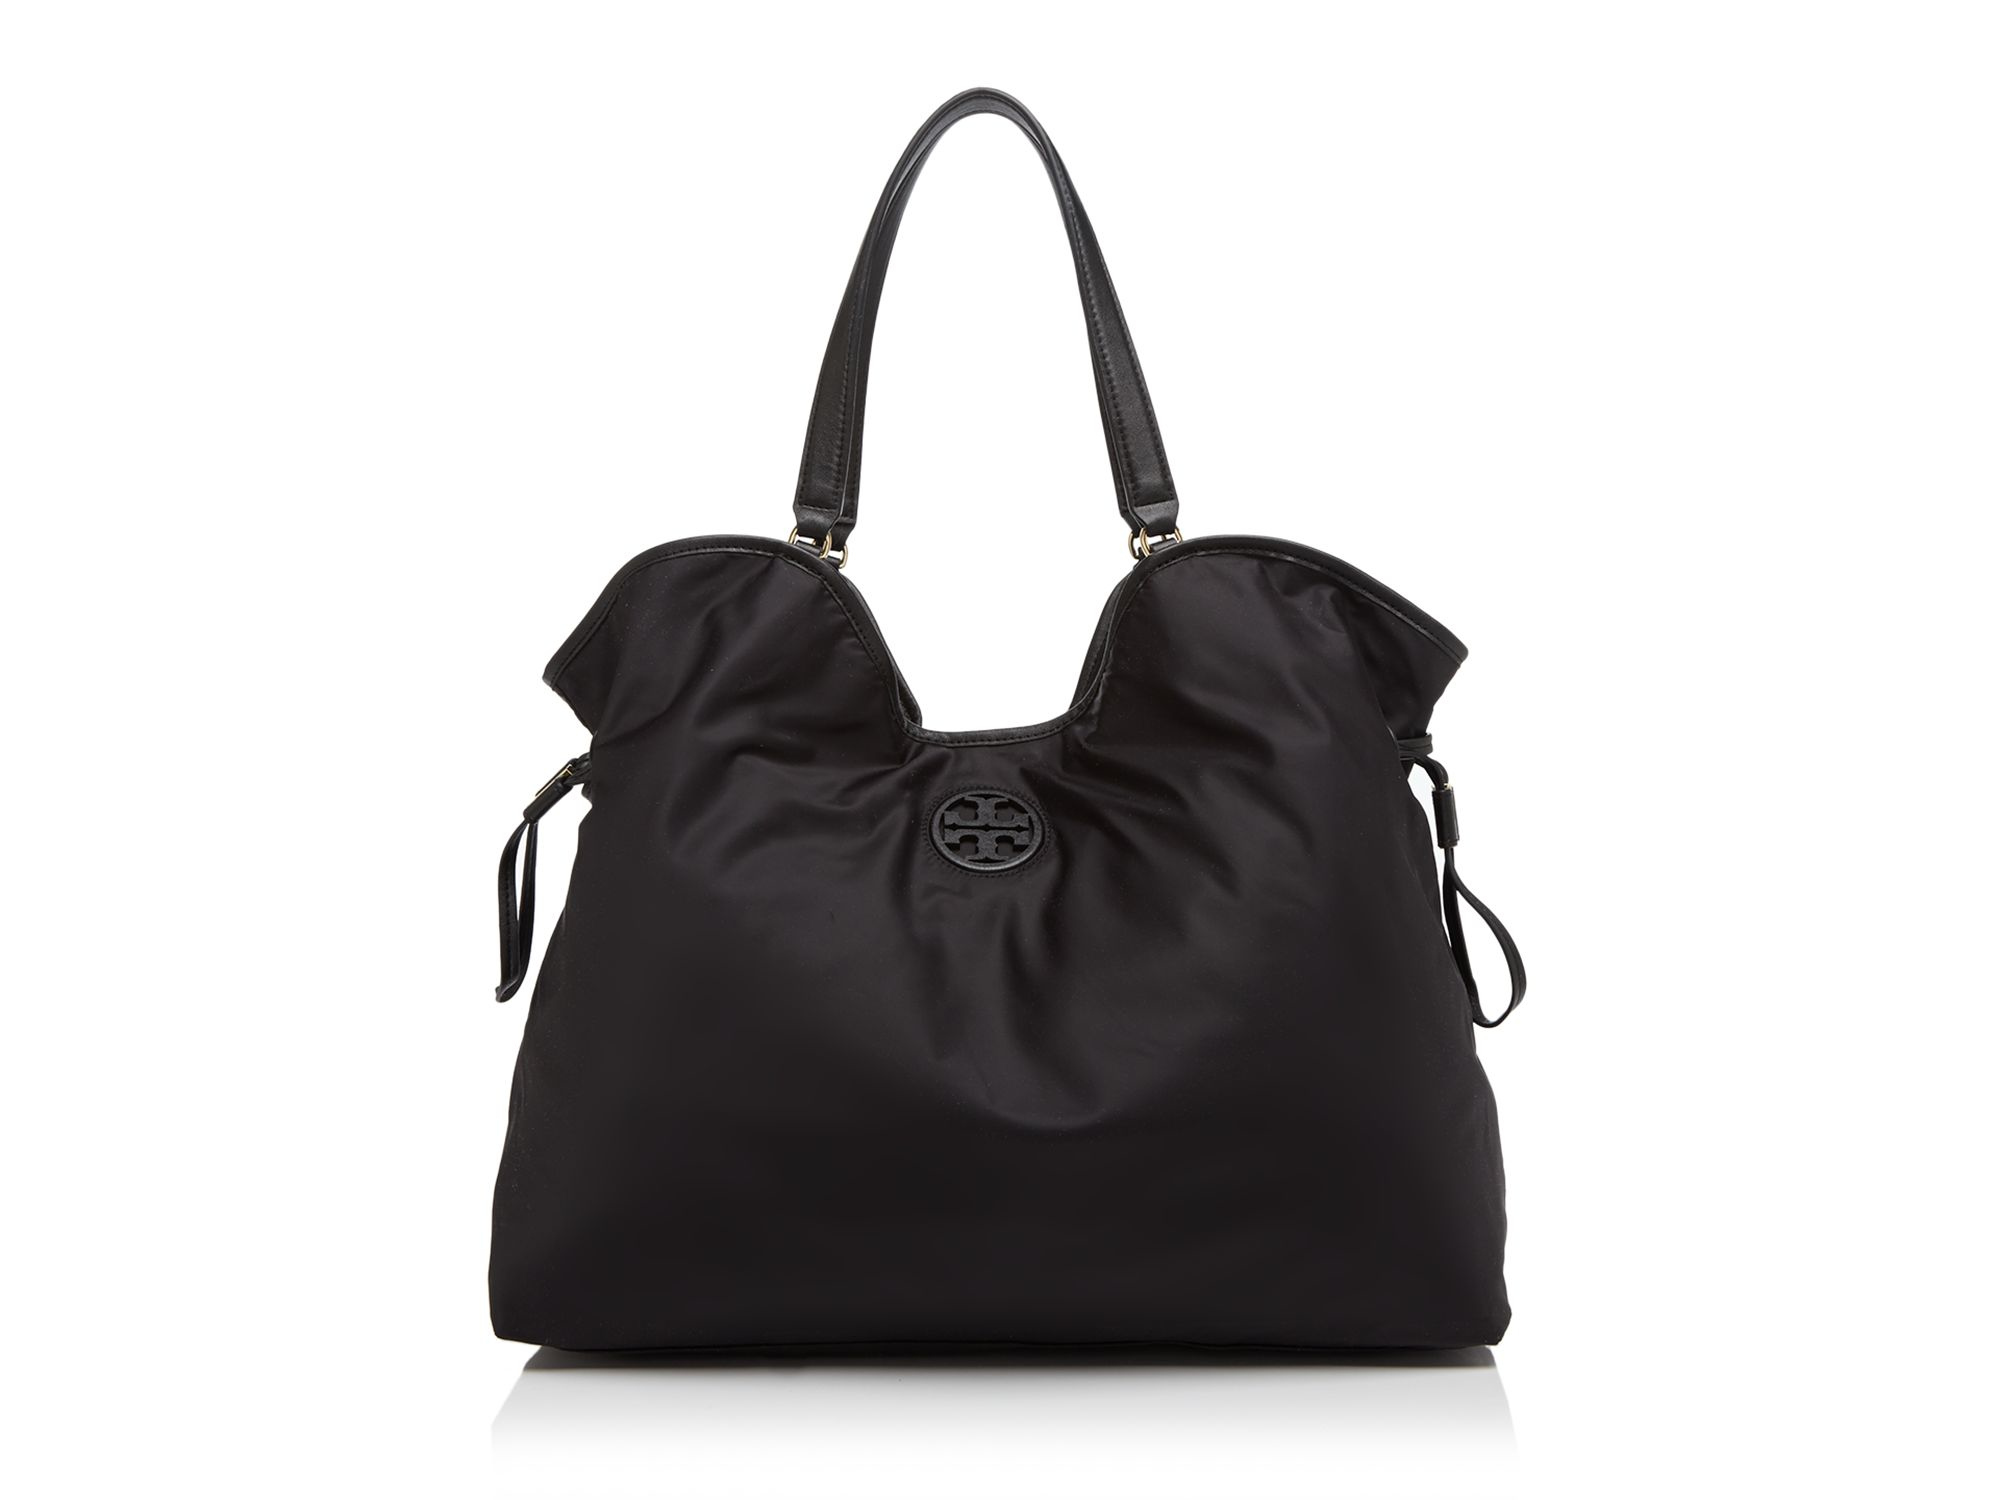 0f4006f61a89 Lyst - Tory Burch Nylon Slouchy Tote in Black